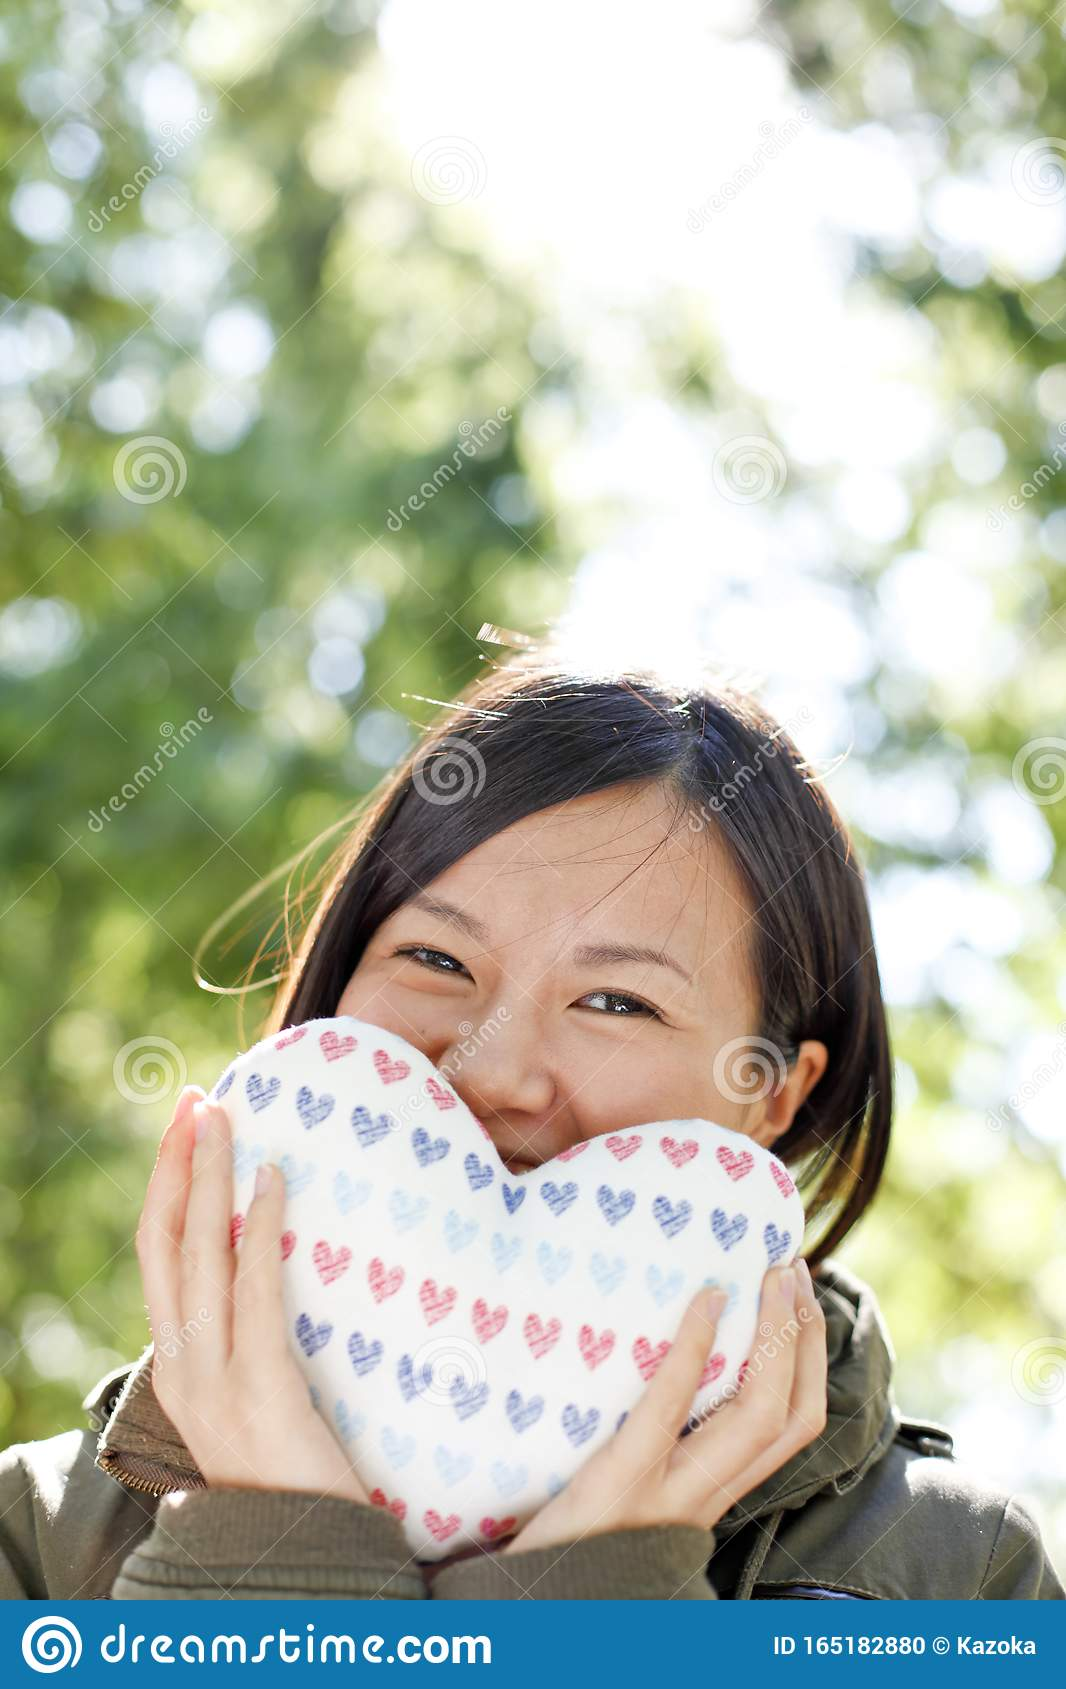 Japanese Girl`s First Love Image Stock Photo - Image of